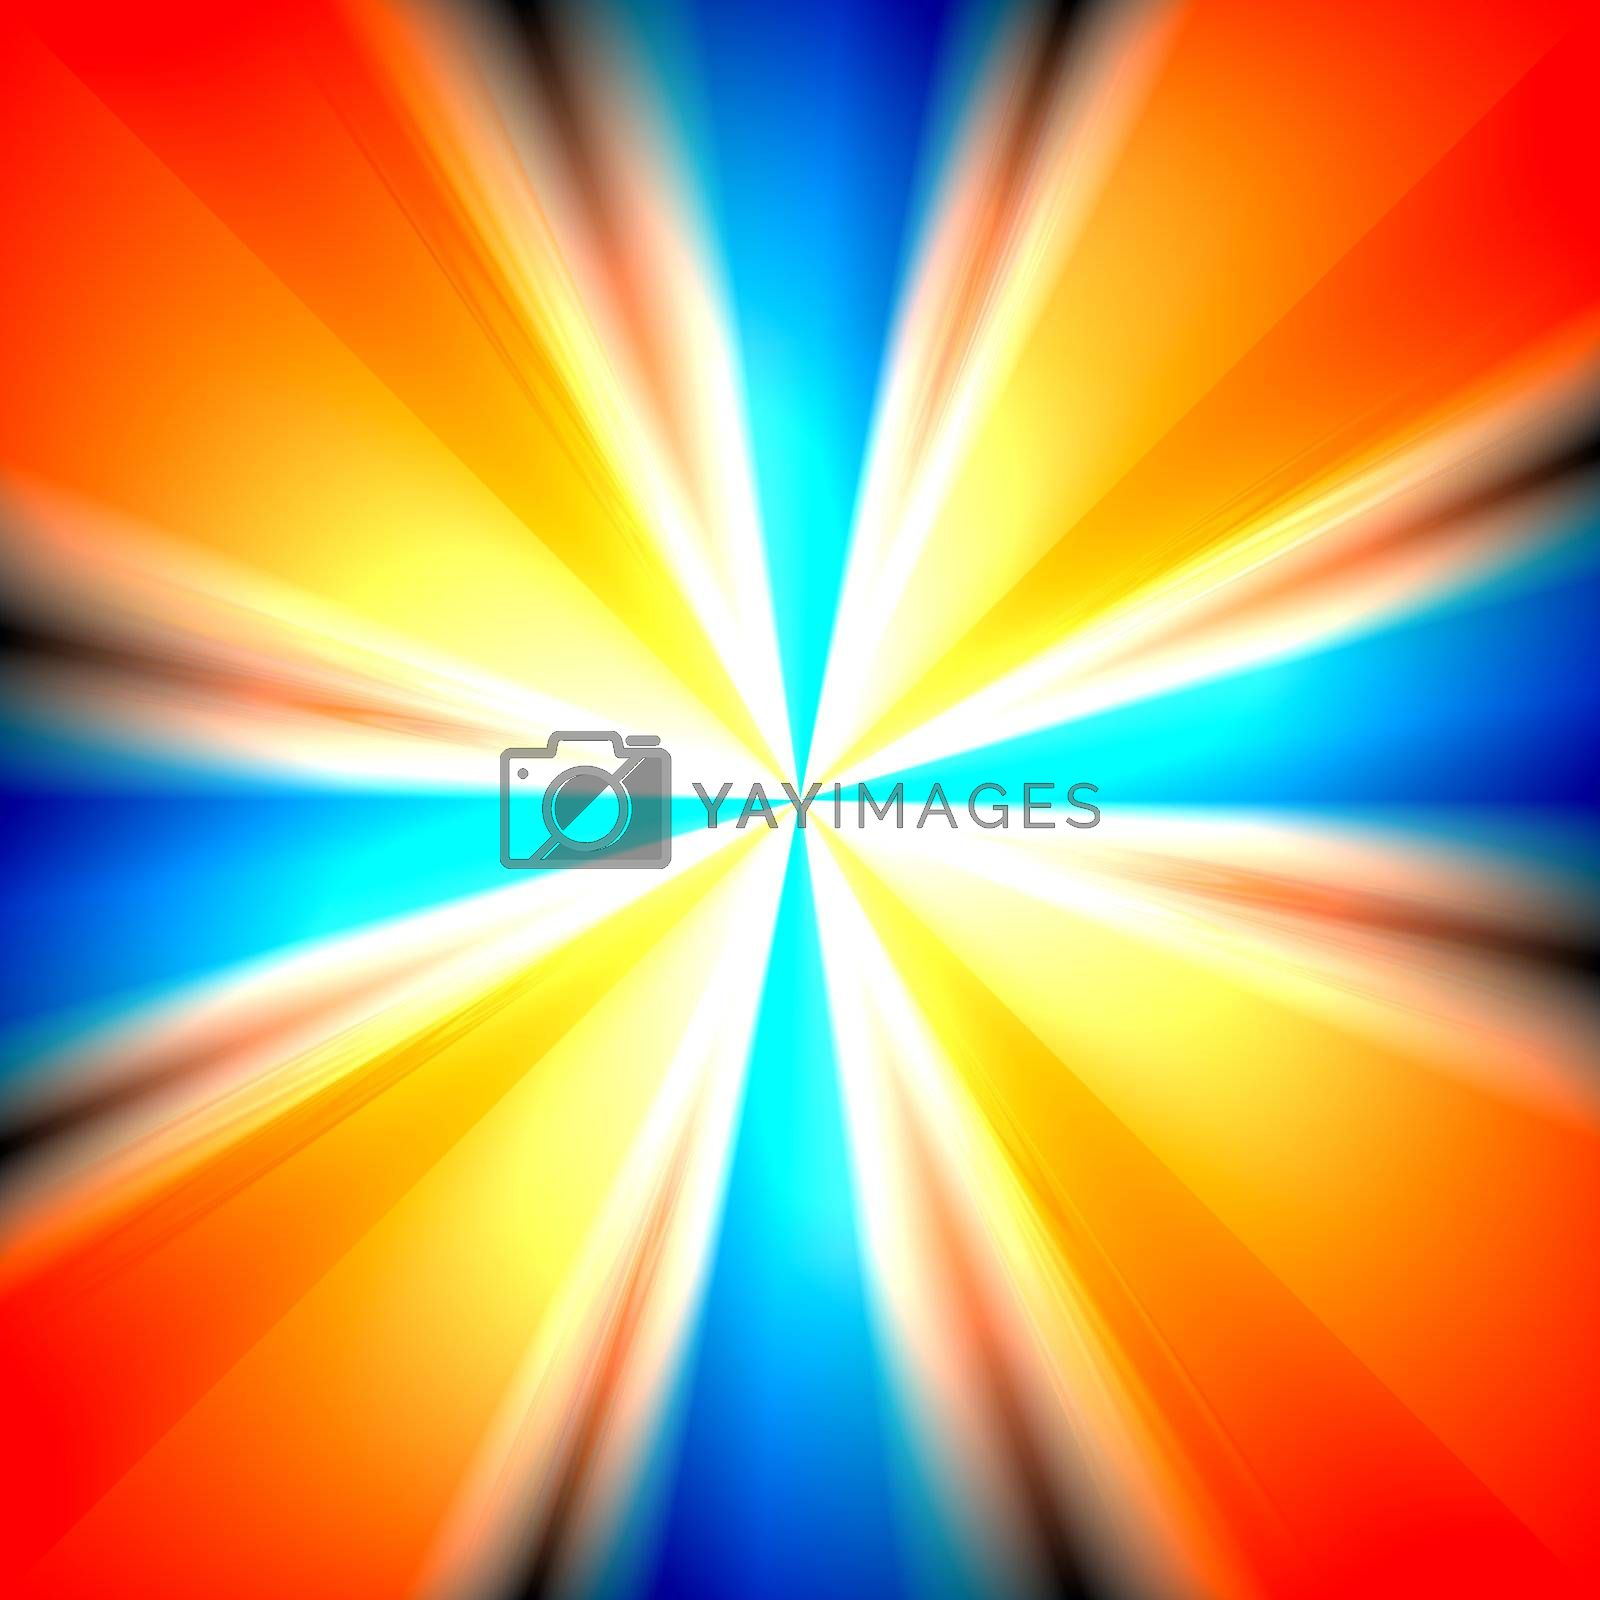 A colorful vortex background with a variety of colors.